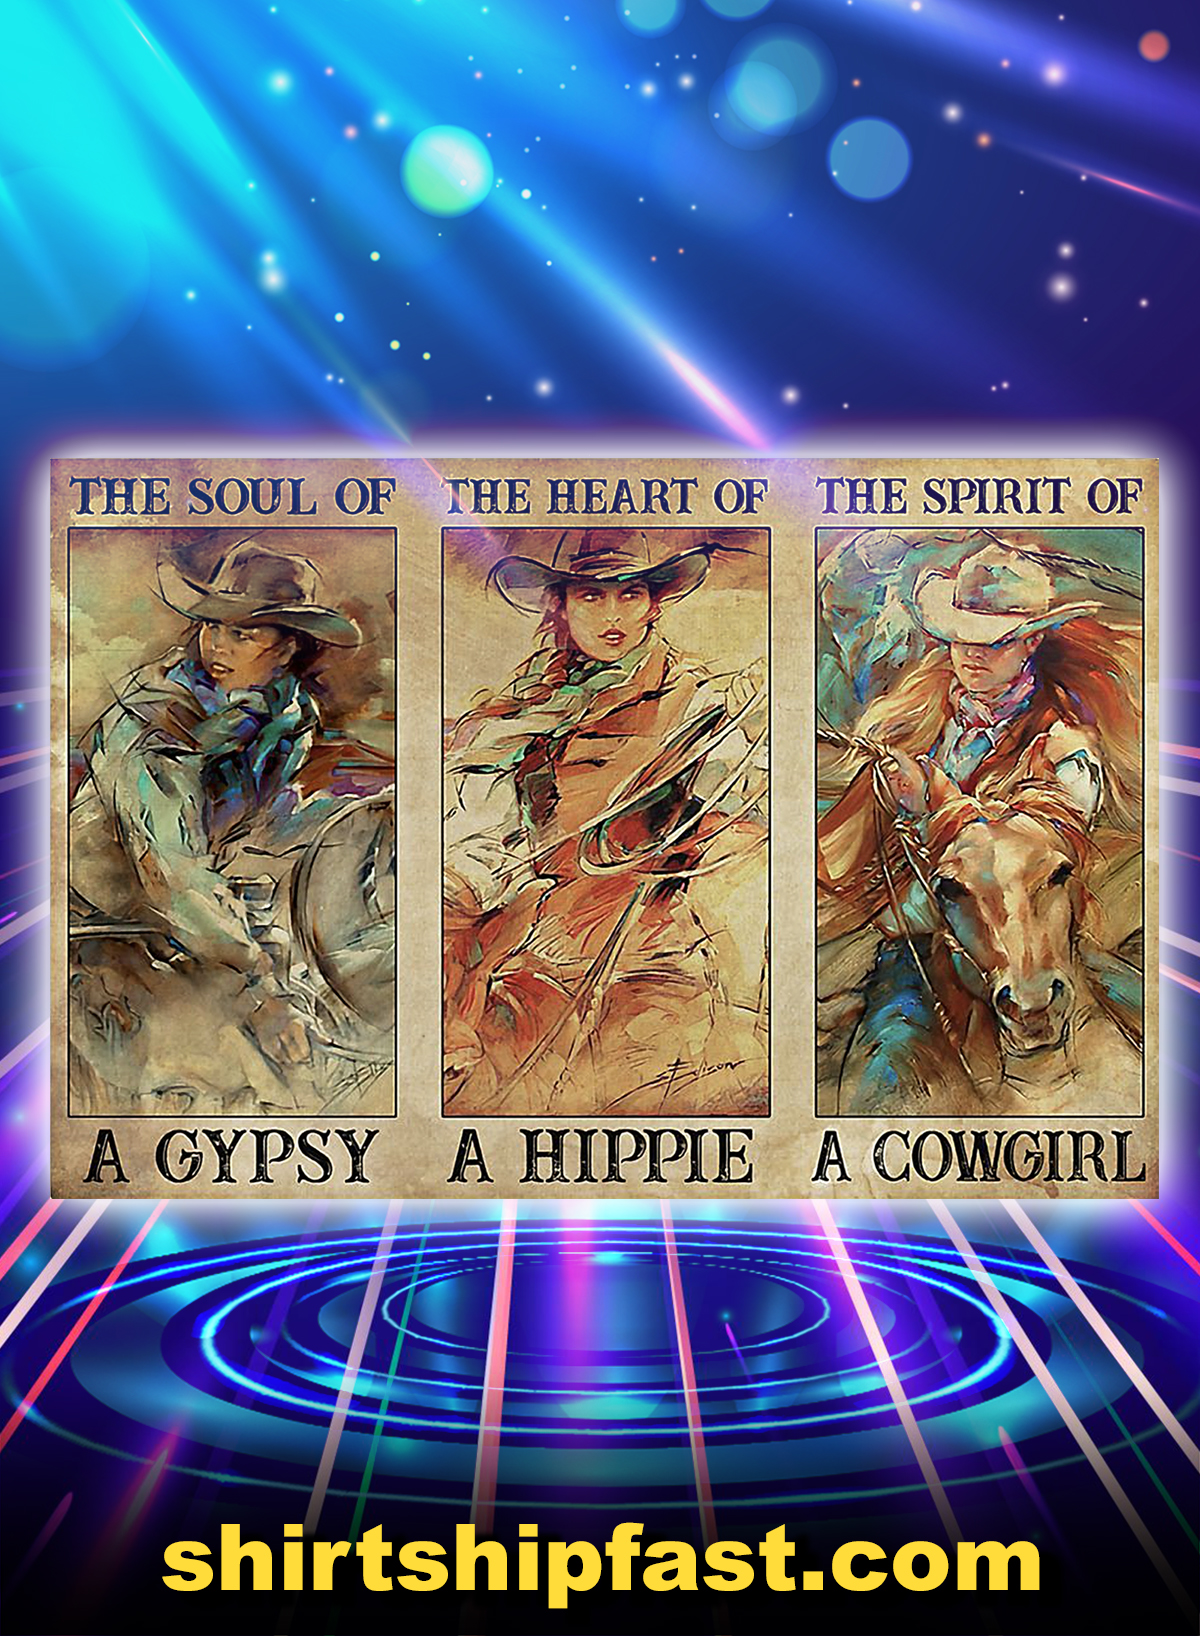 Spirit of a cowgirl the soul of a gypsy poster